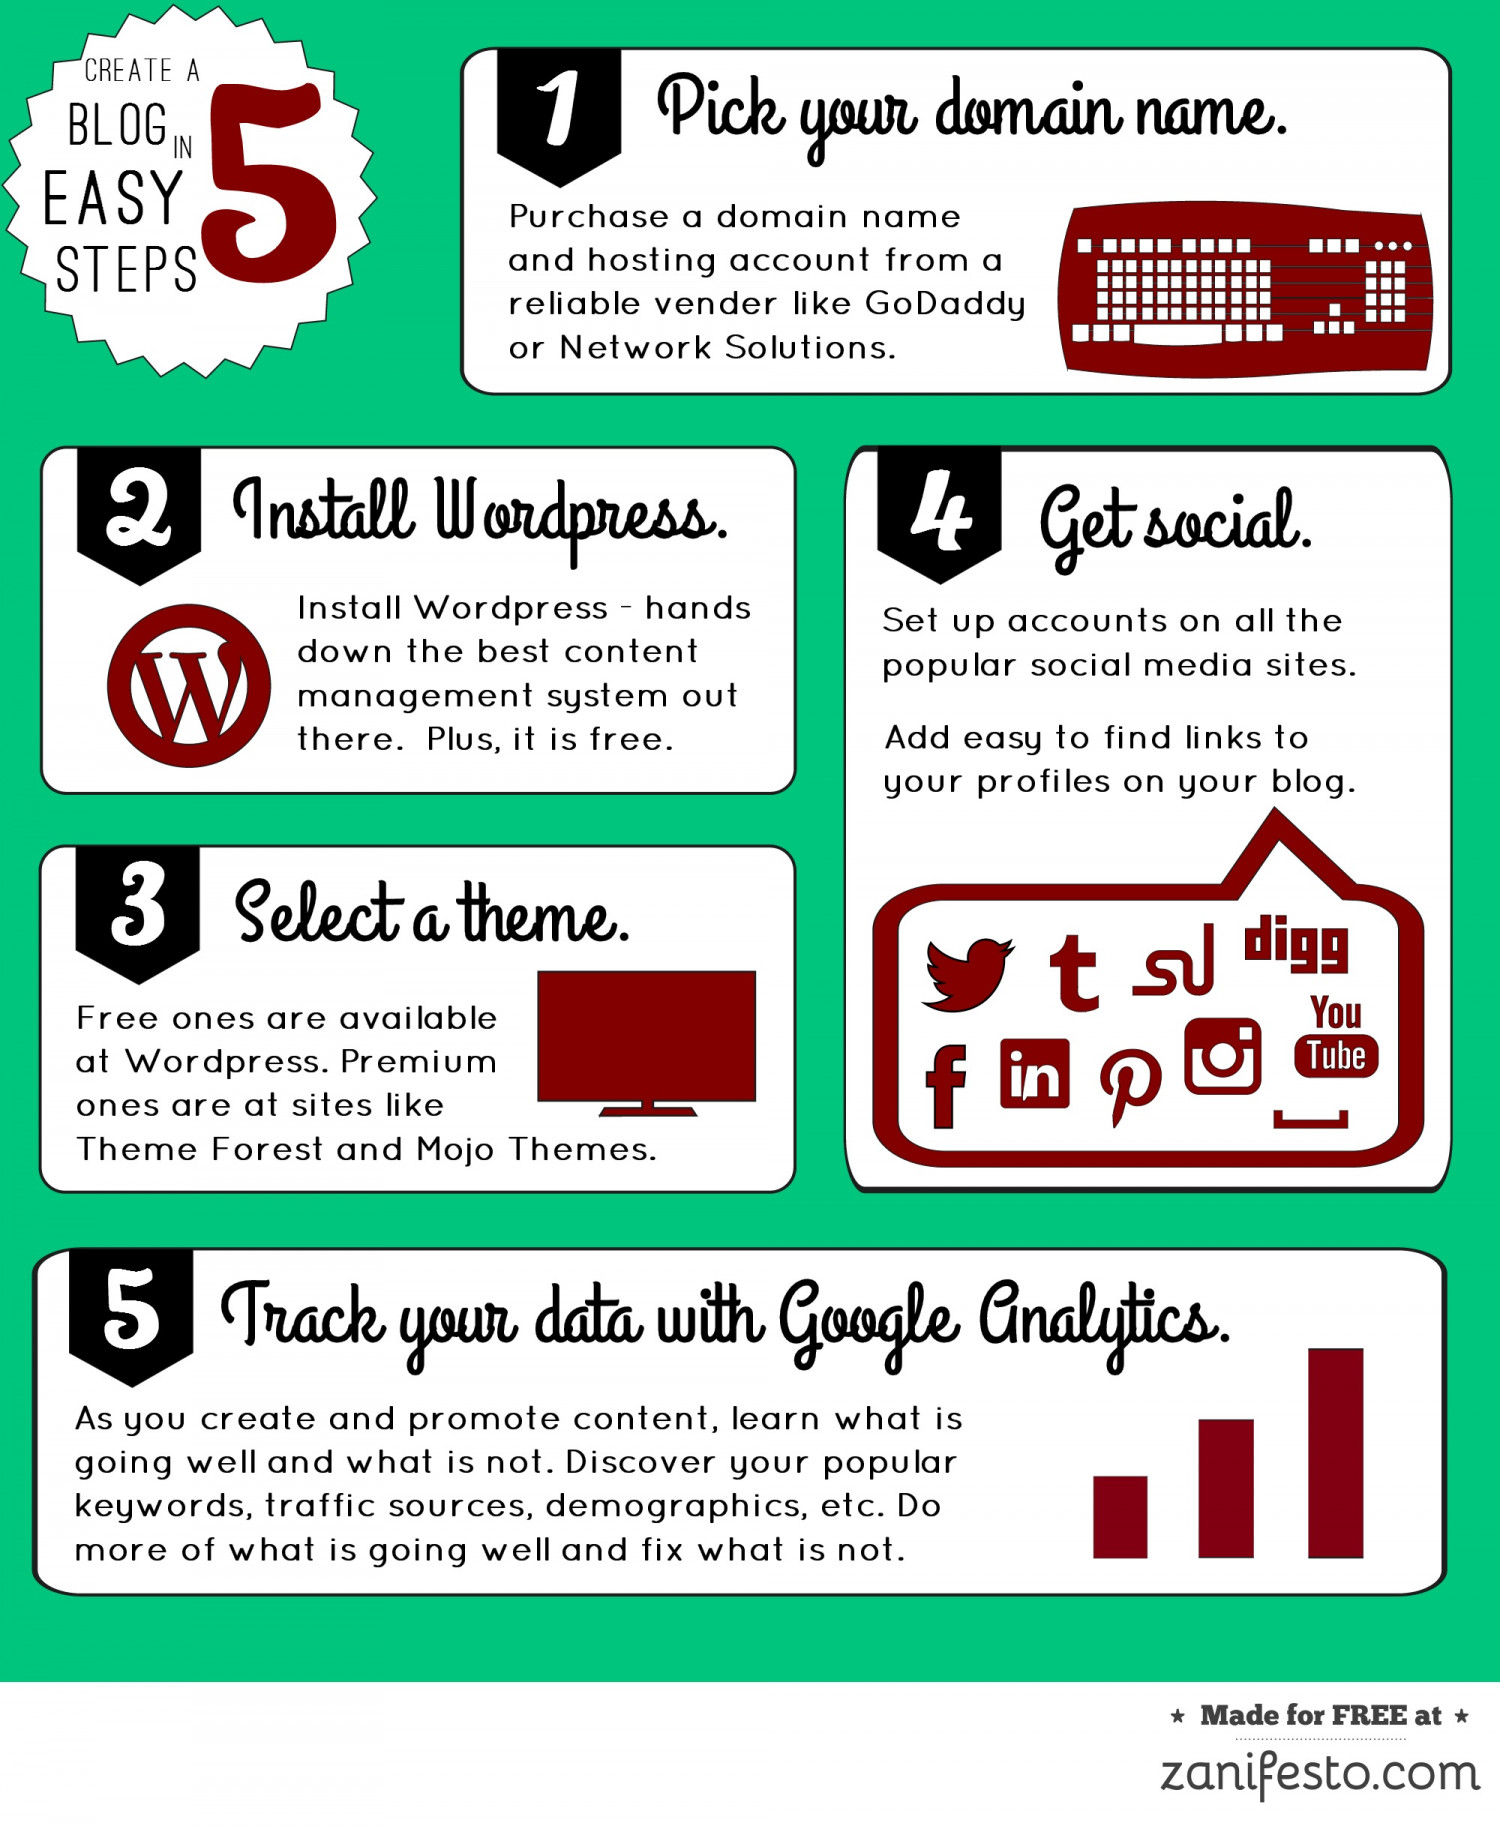 Create a Blog in 5 Easy Steps Infographic